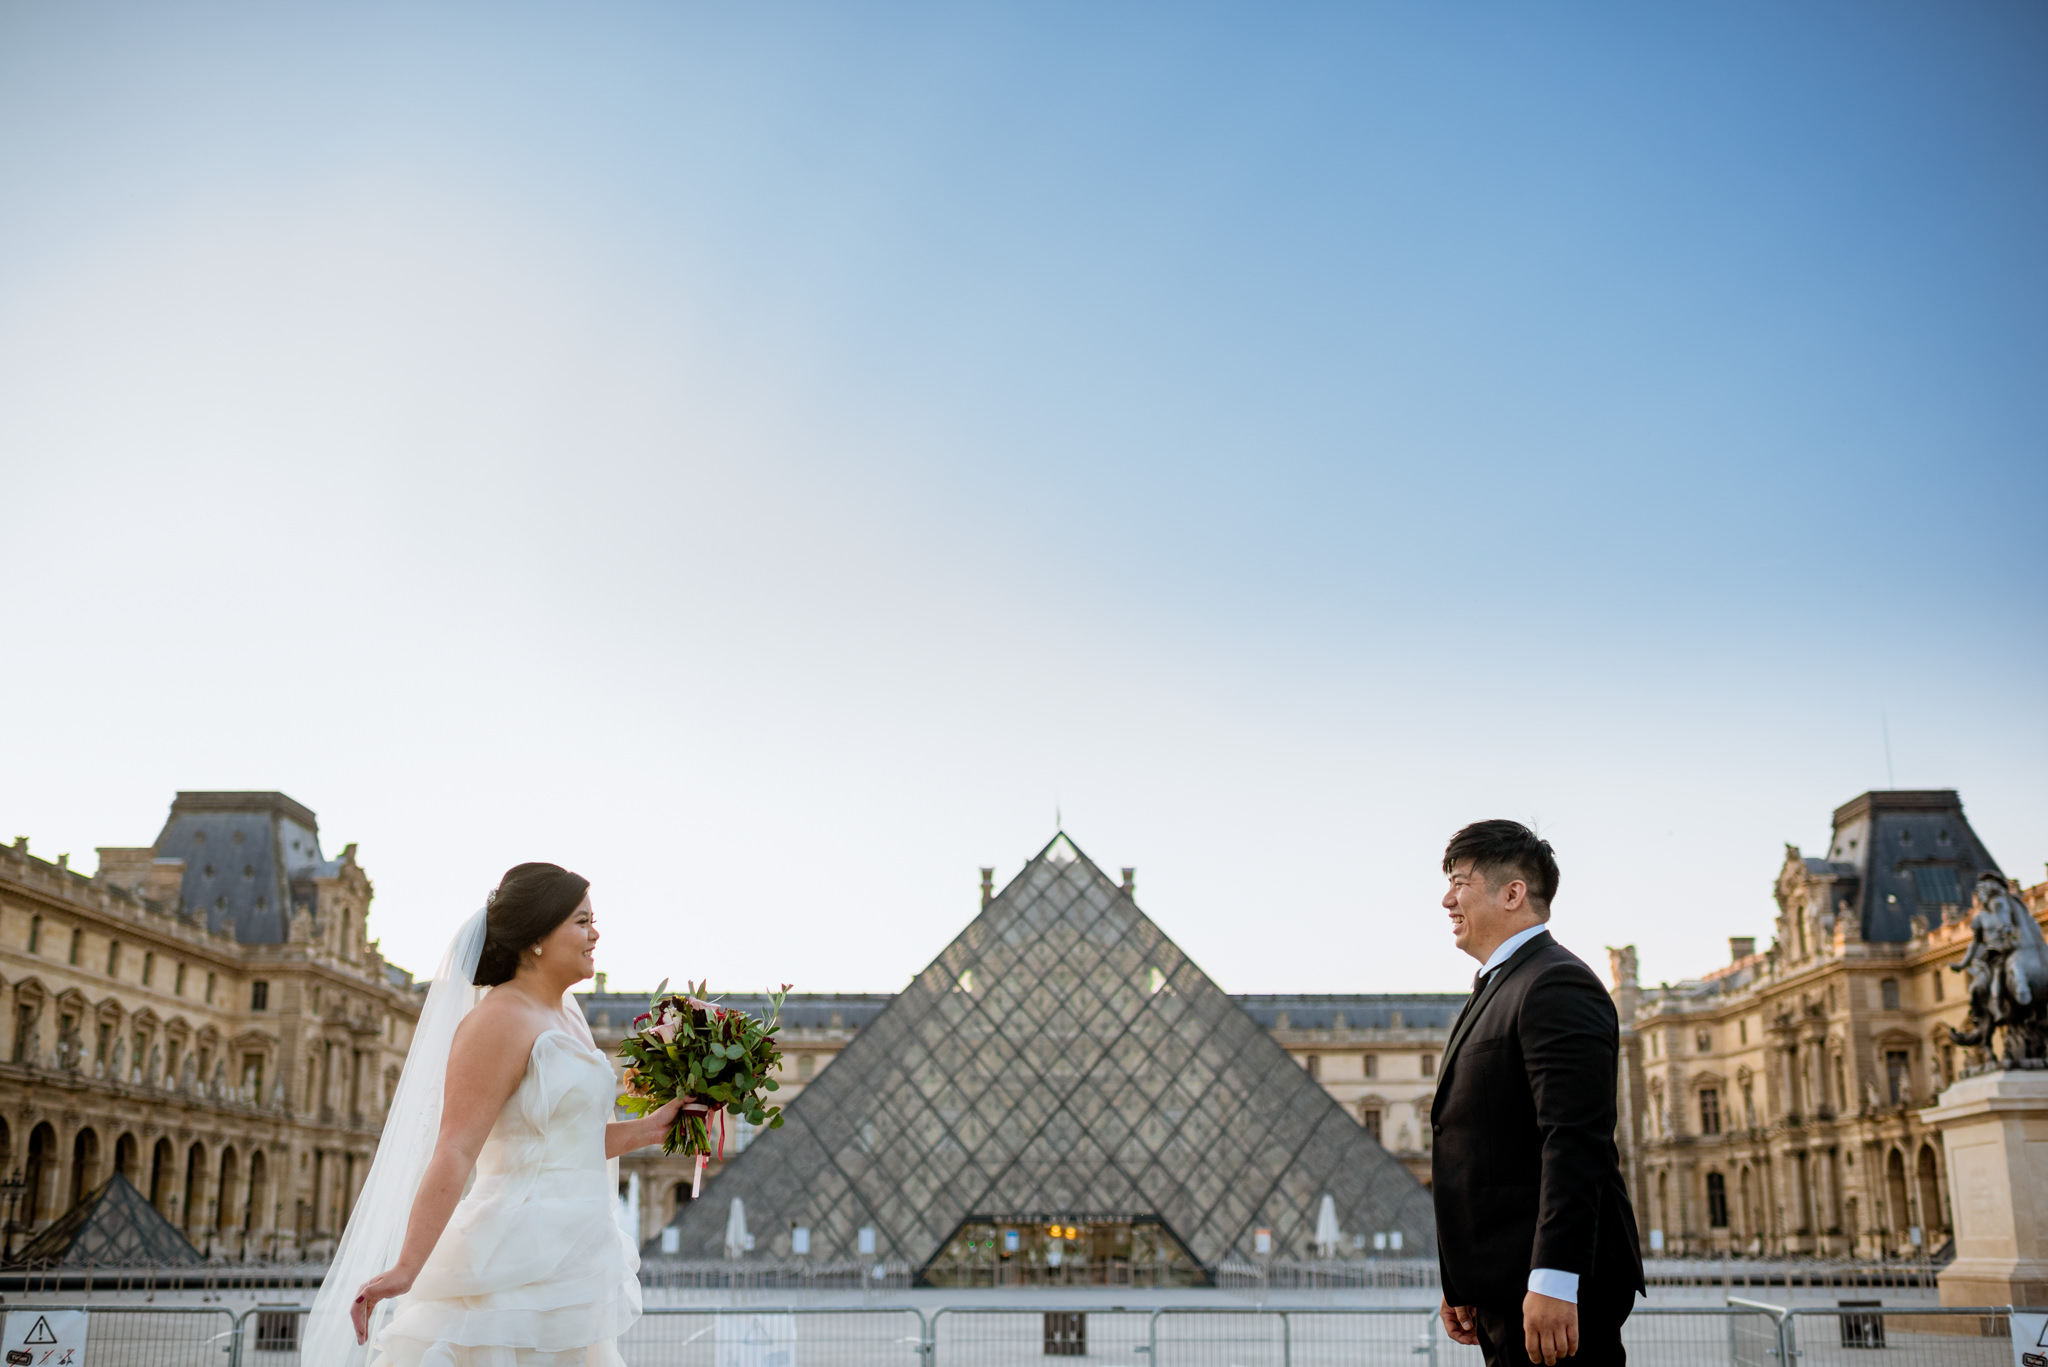 Bride and groom smile and face each other in front of the Louvre.